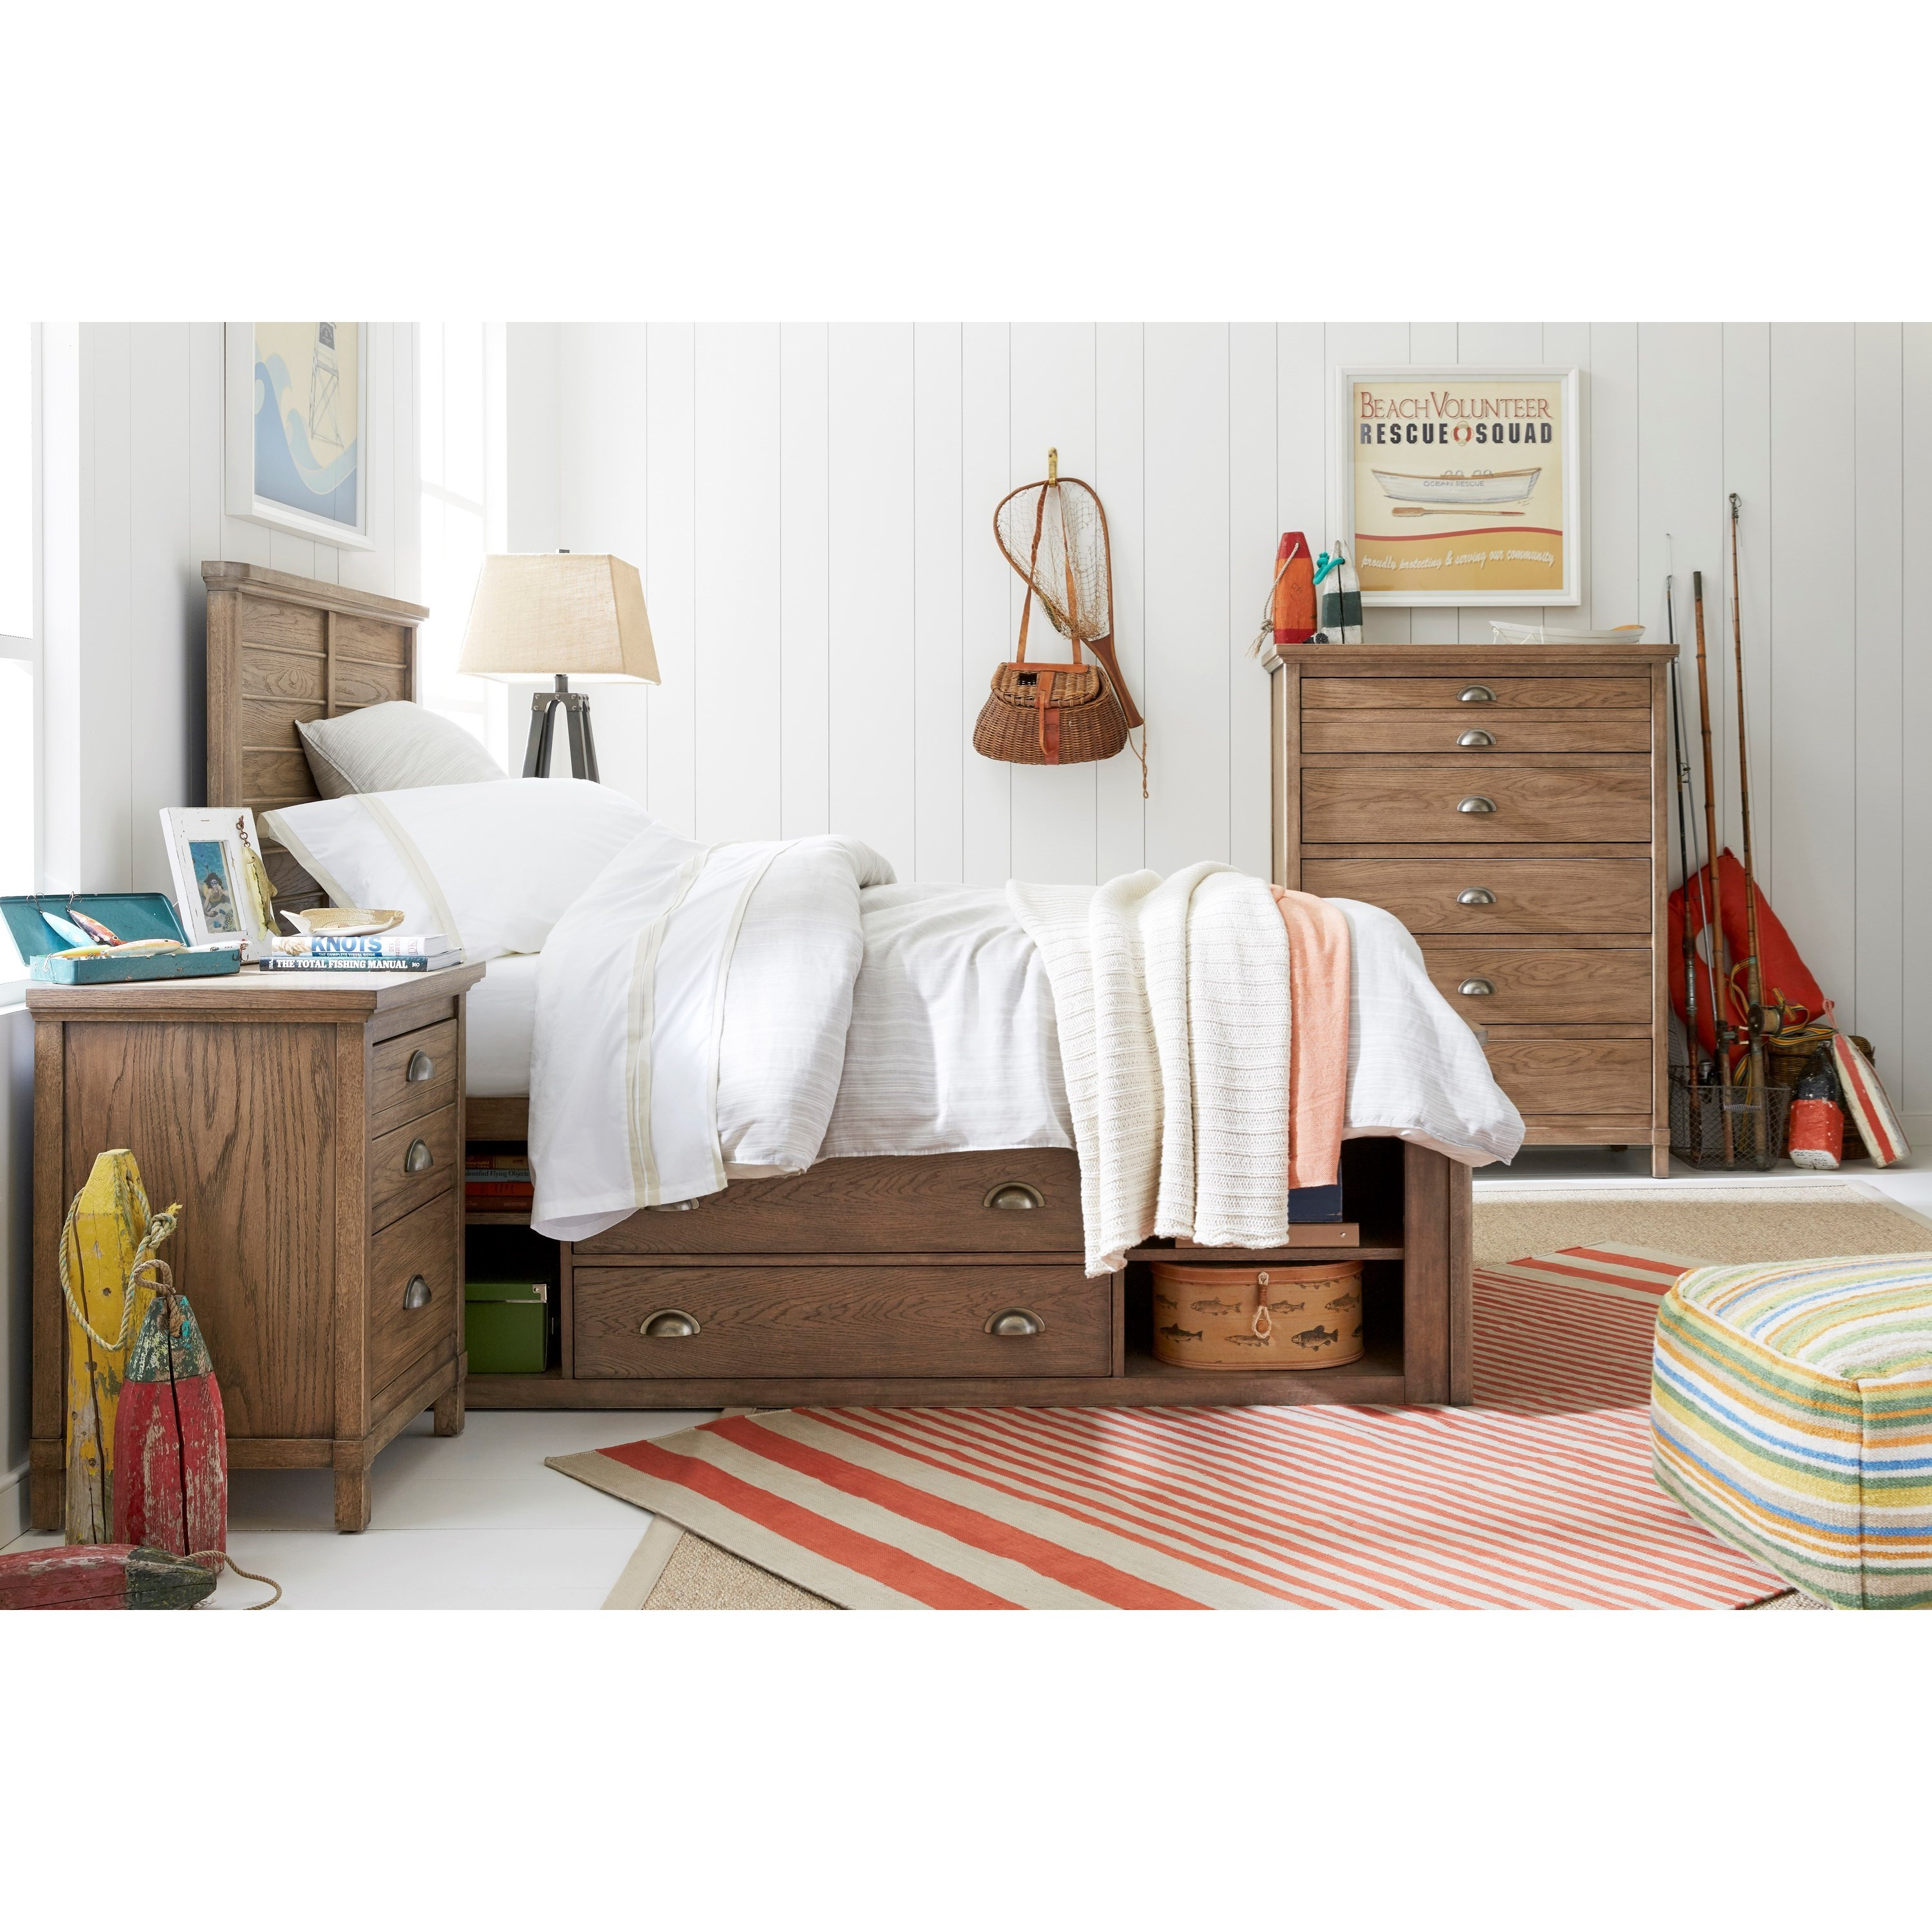 Stone & Leigh Furniture Driftwood Park Full Bedroom Group - Item Number: 536-13 F Bedroom Group 1